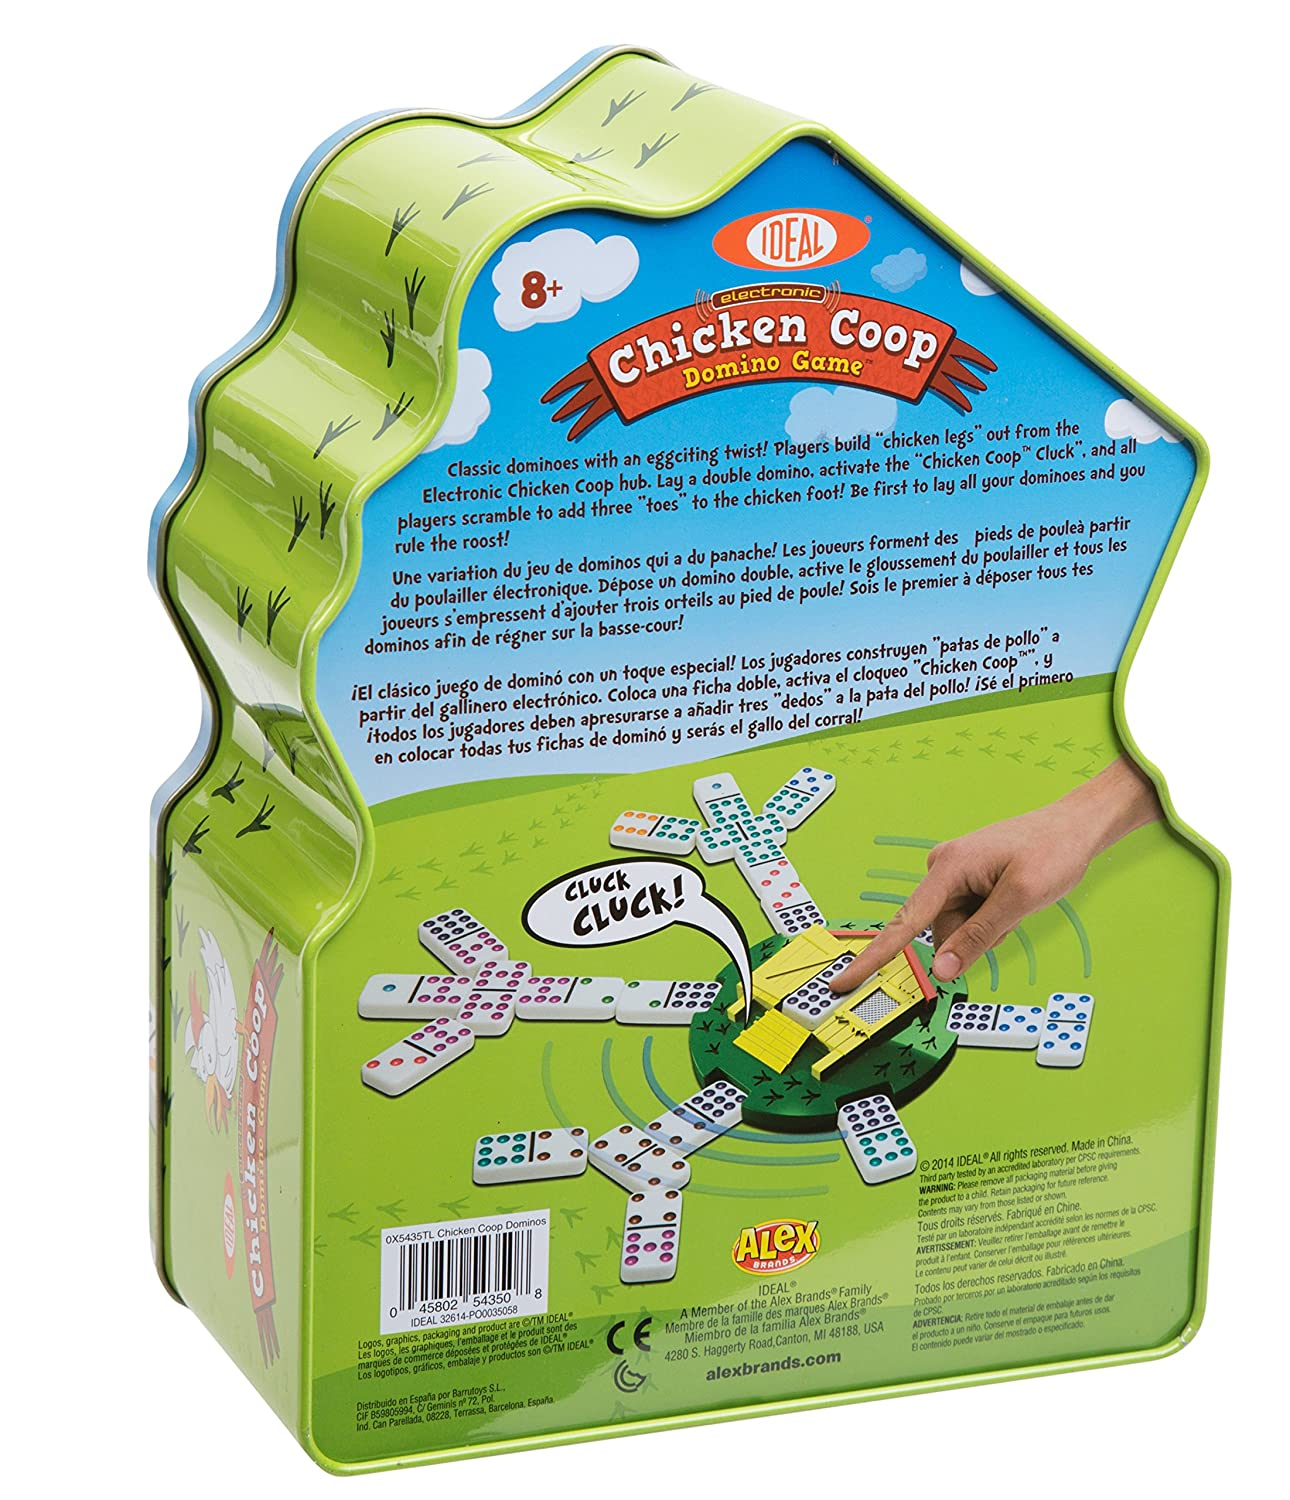 Amazon.com: Ideal electronic Chicken Coop Domino Game: Toys ...